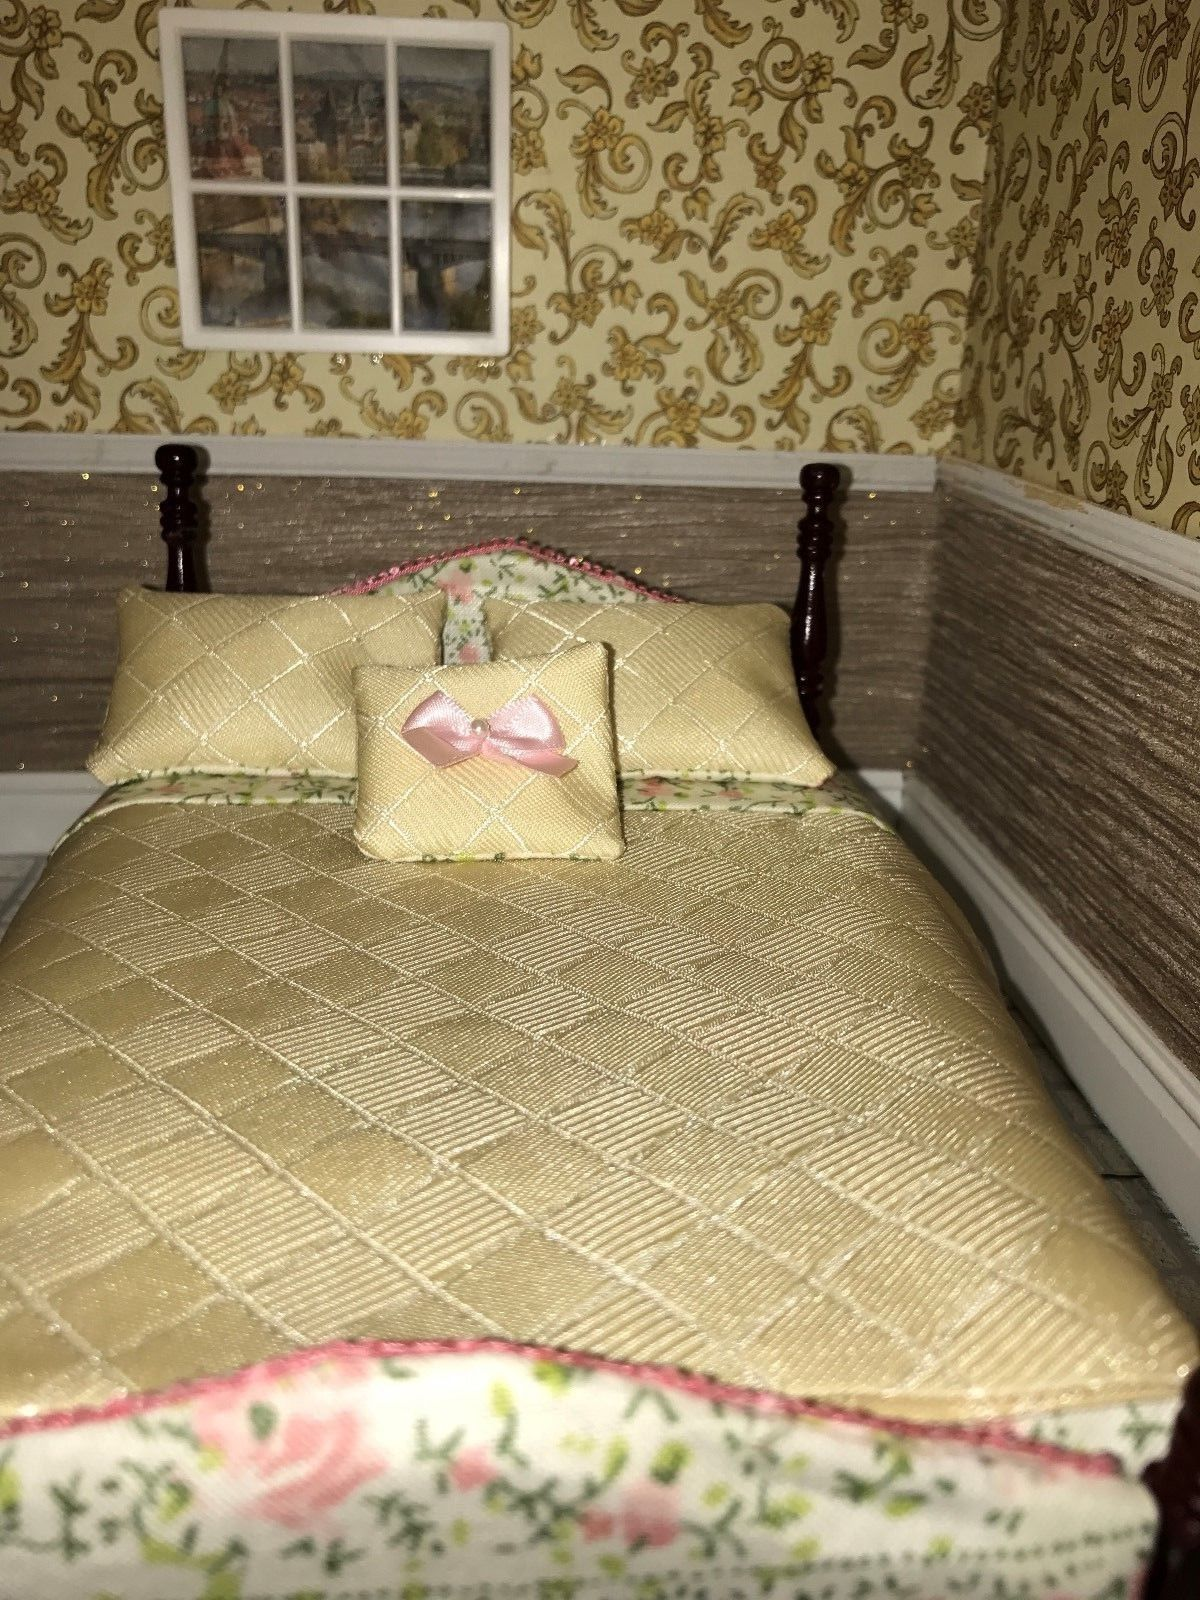 1/12th scale bed and bedding